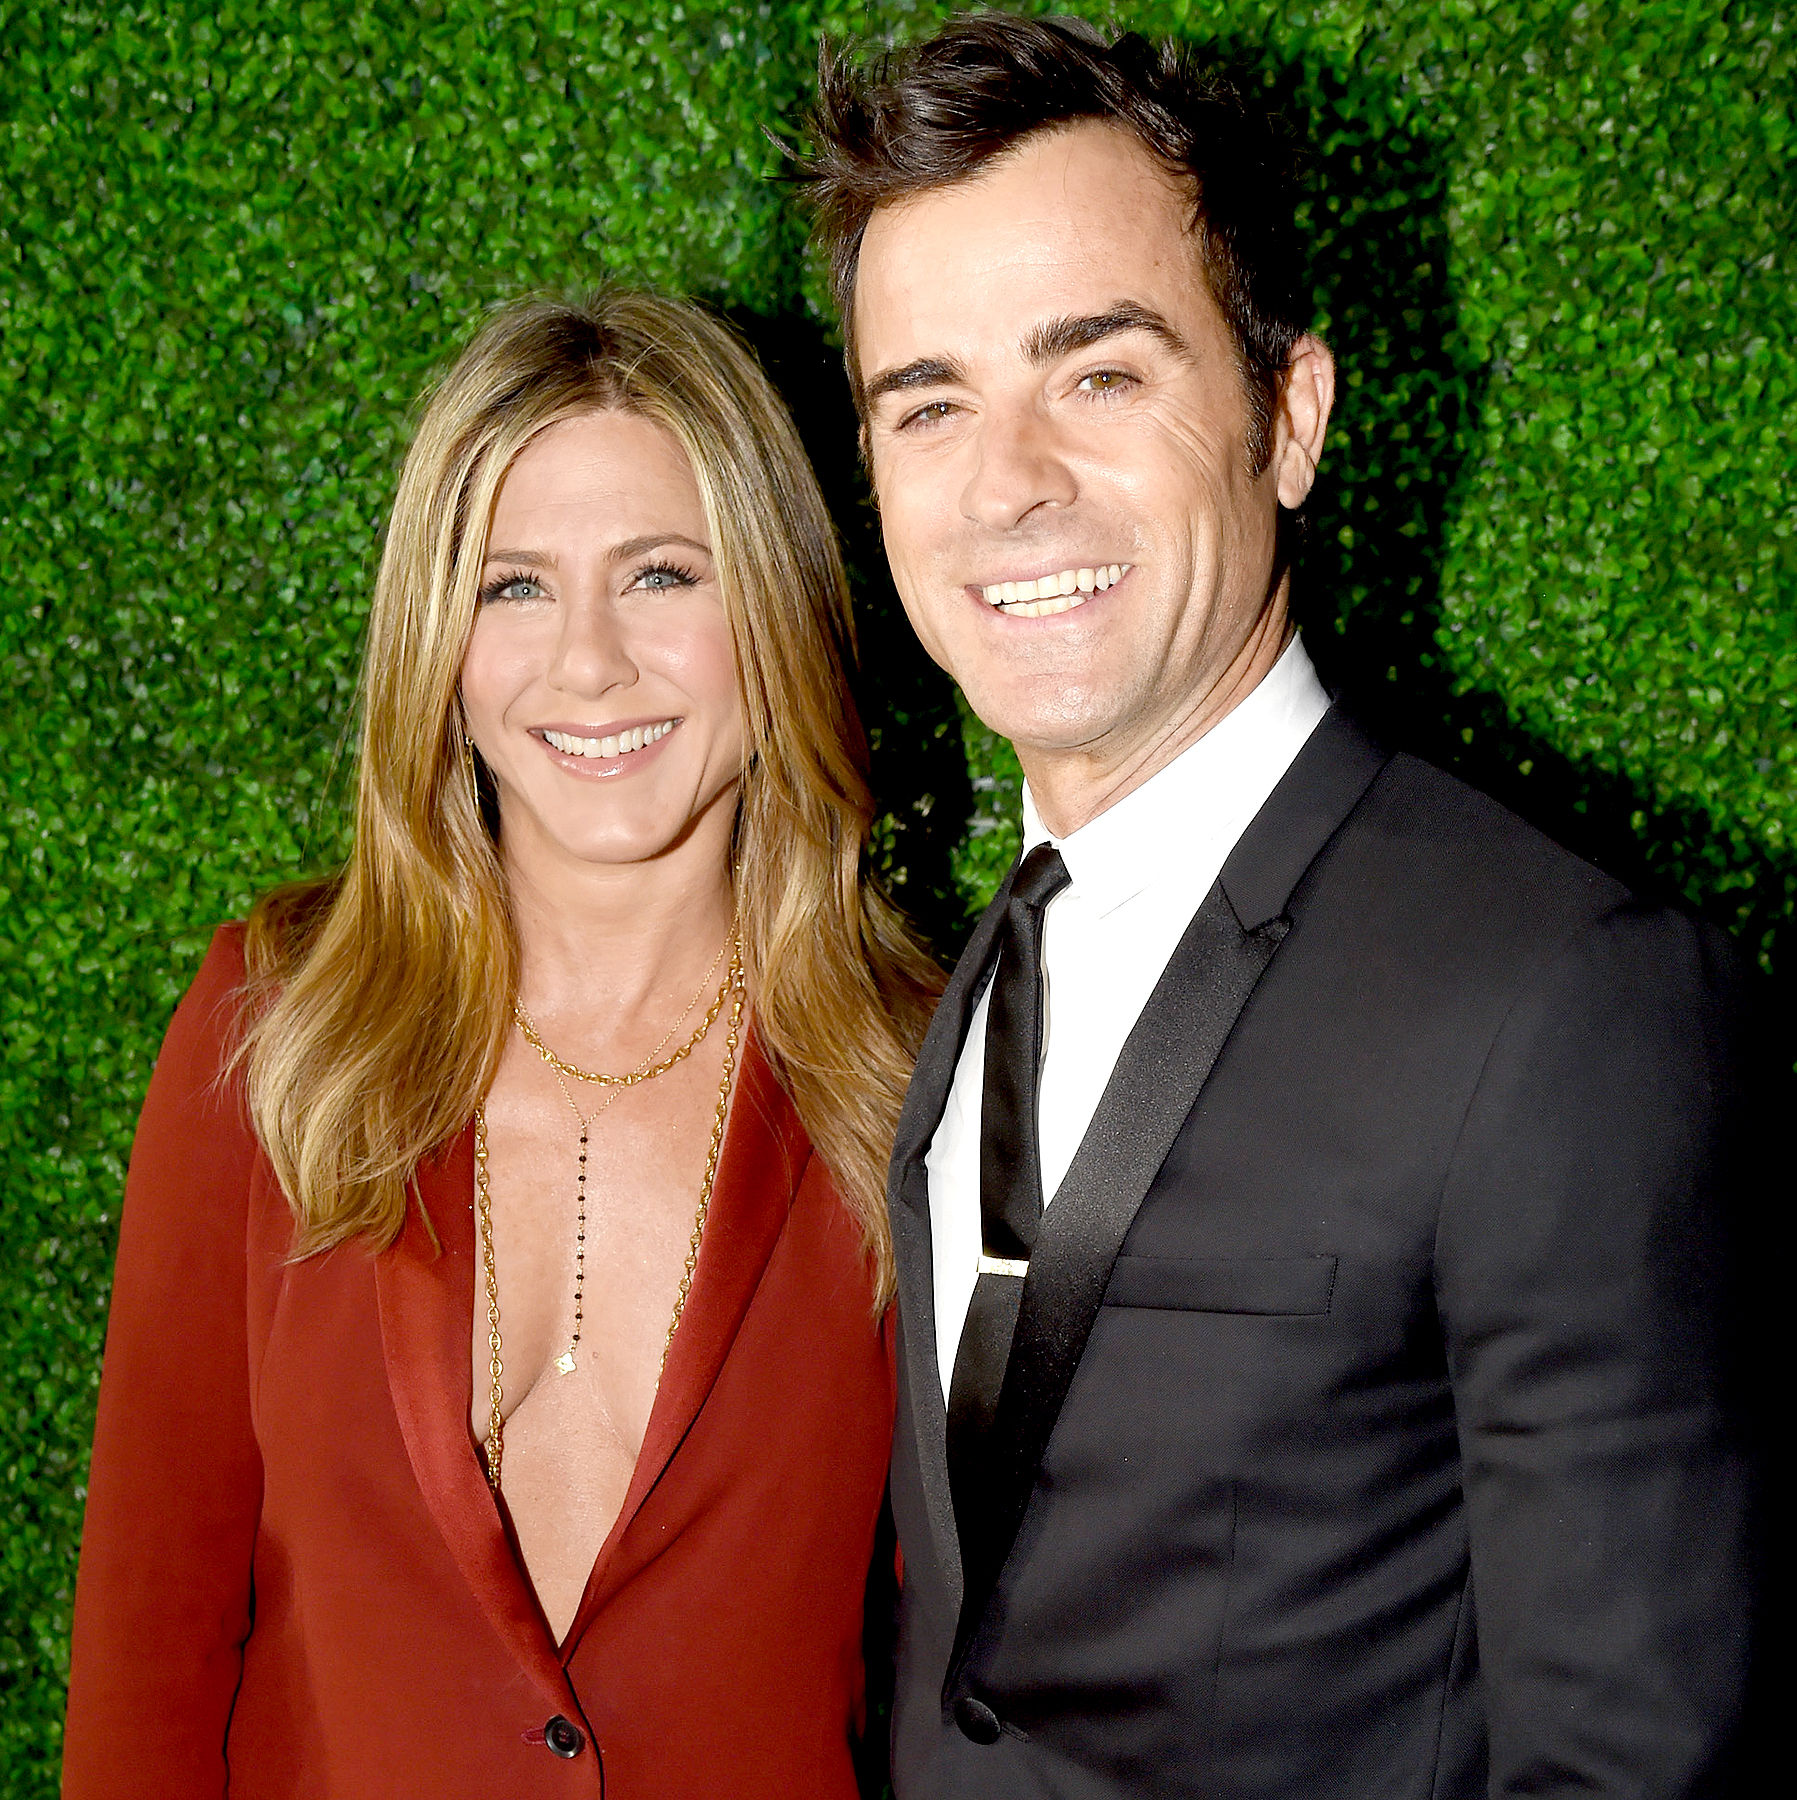 Jennifer Aniston and Justin Theroux (R) attend the 20th annual Critics' Choice Movie Awards at the Hollywood Palladium on January 15, 2015 in Los Angeles, California.